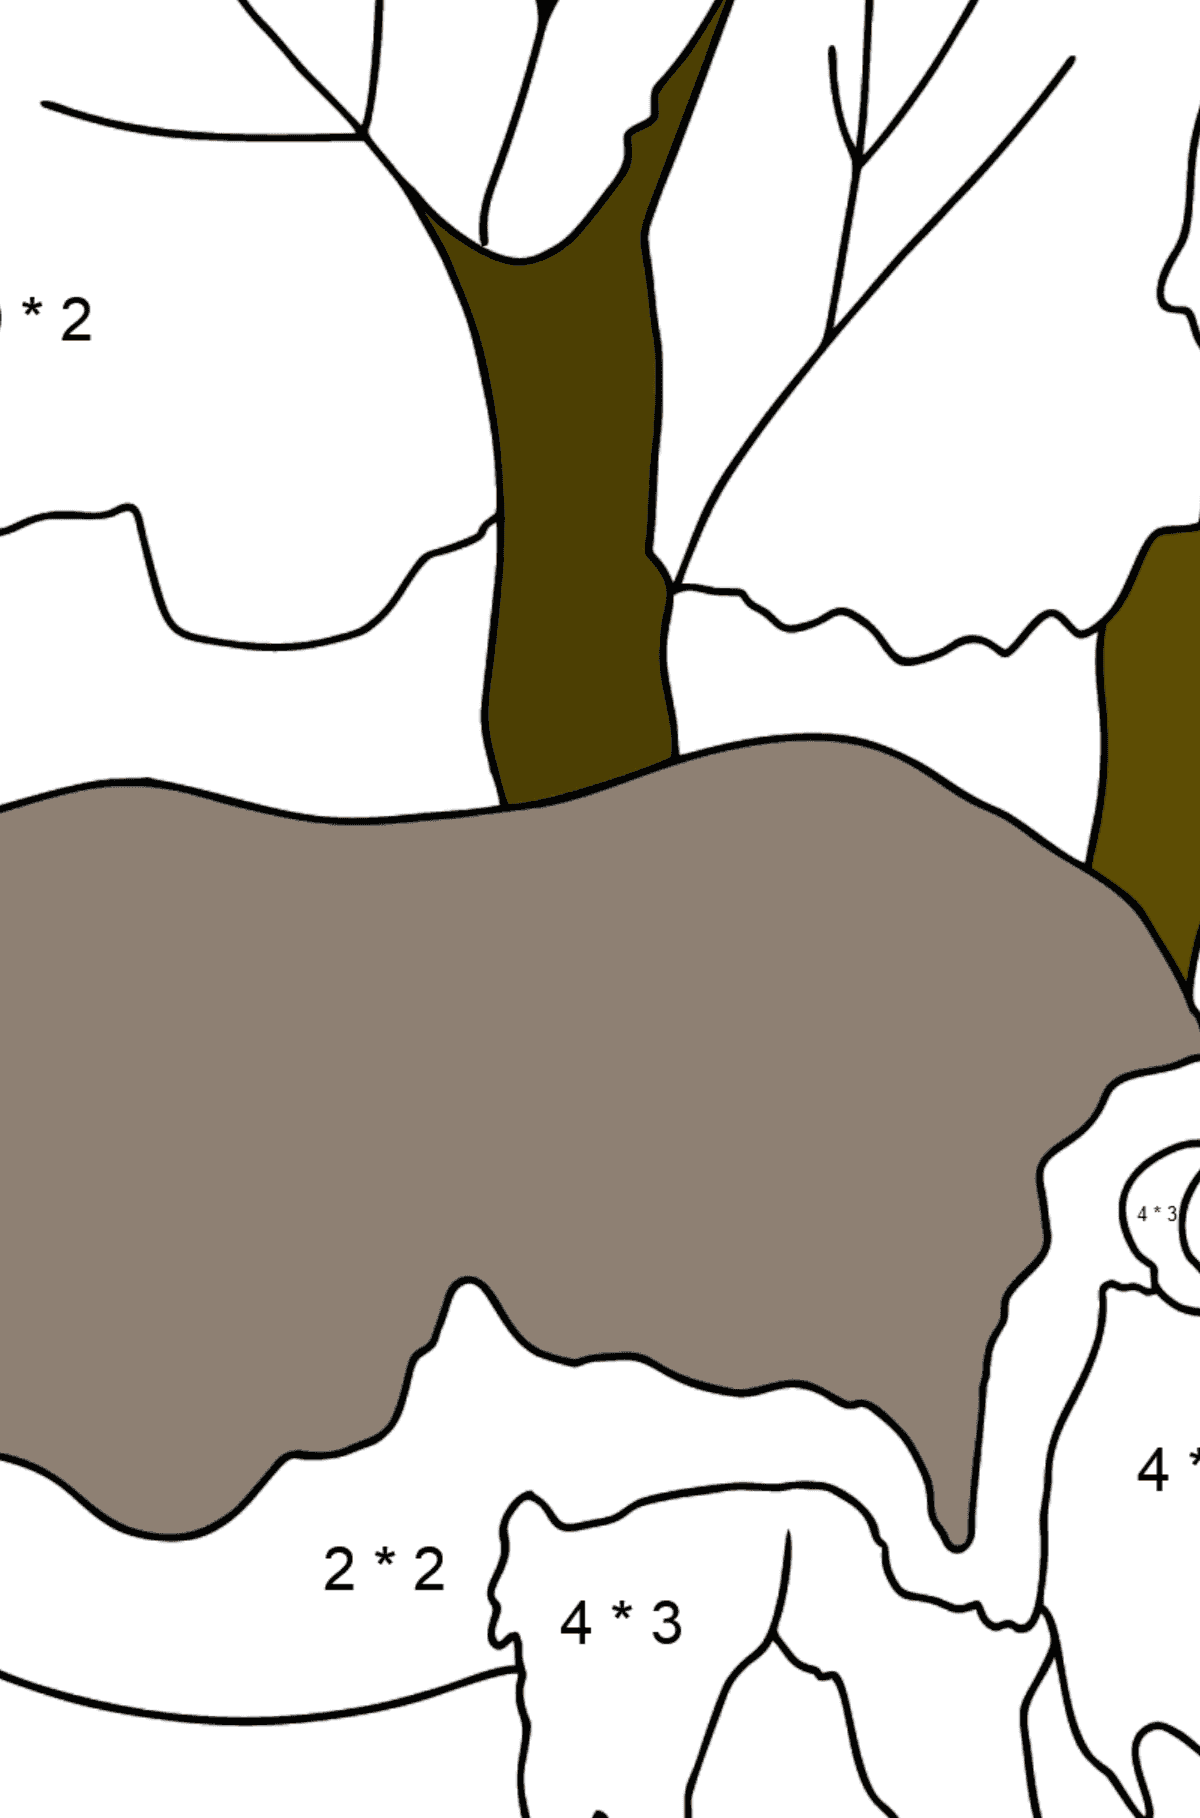 Coloring Page - A Massive Rhino - Math Coloring - Multiplication for Kids